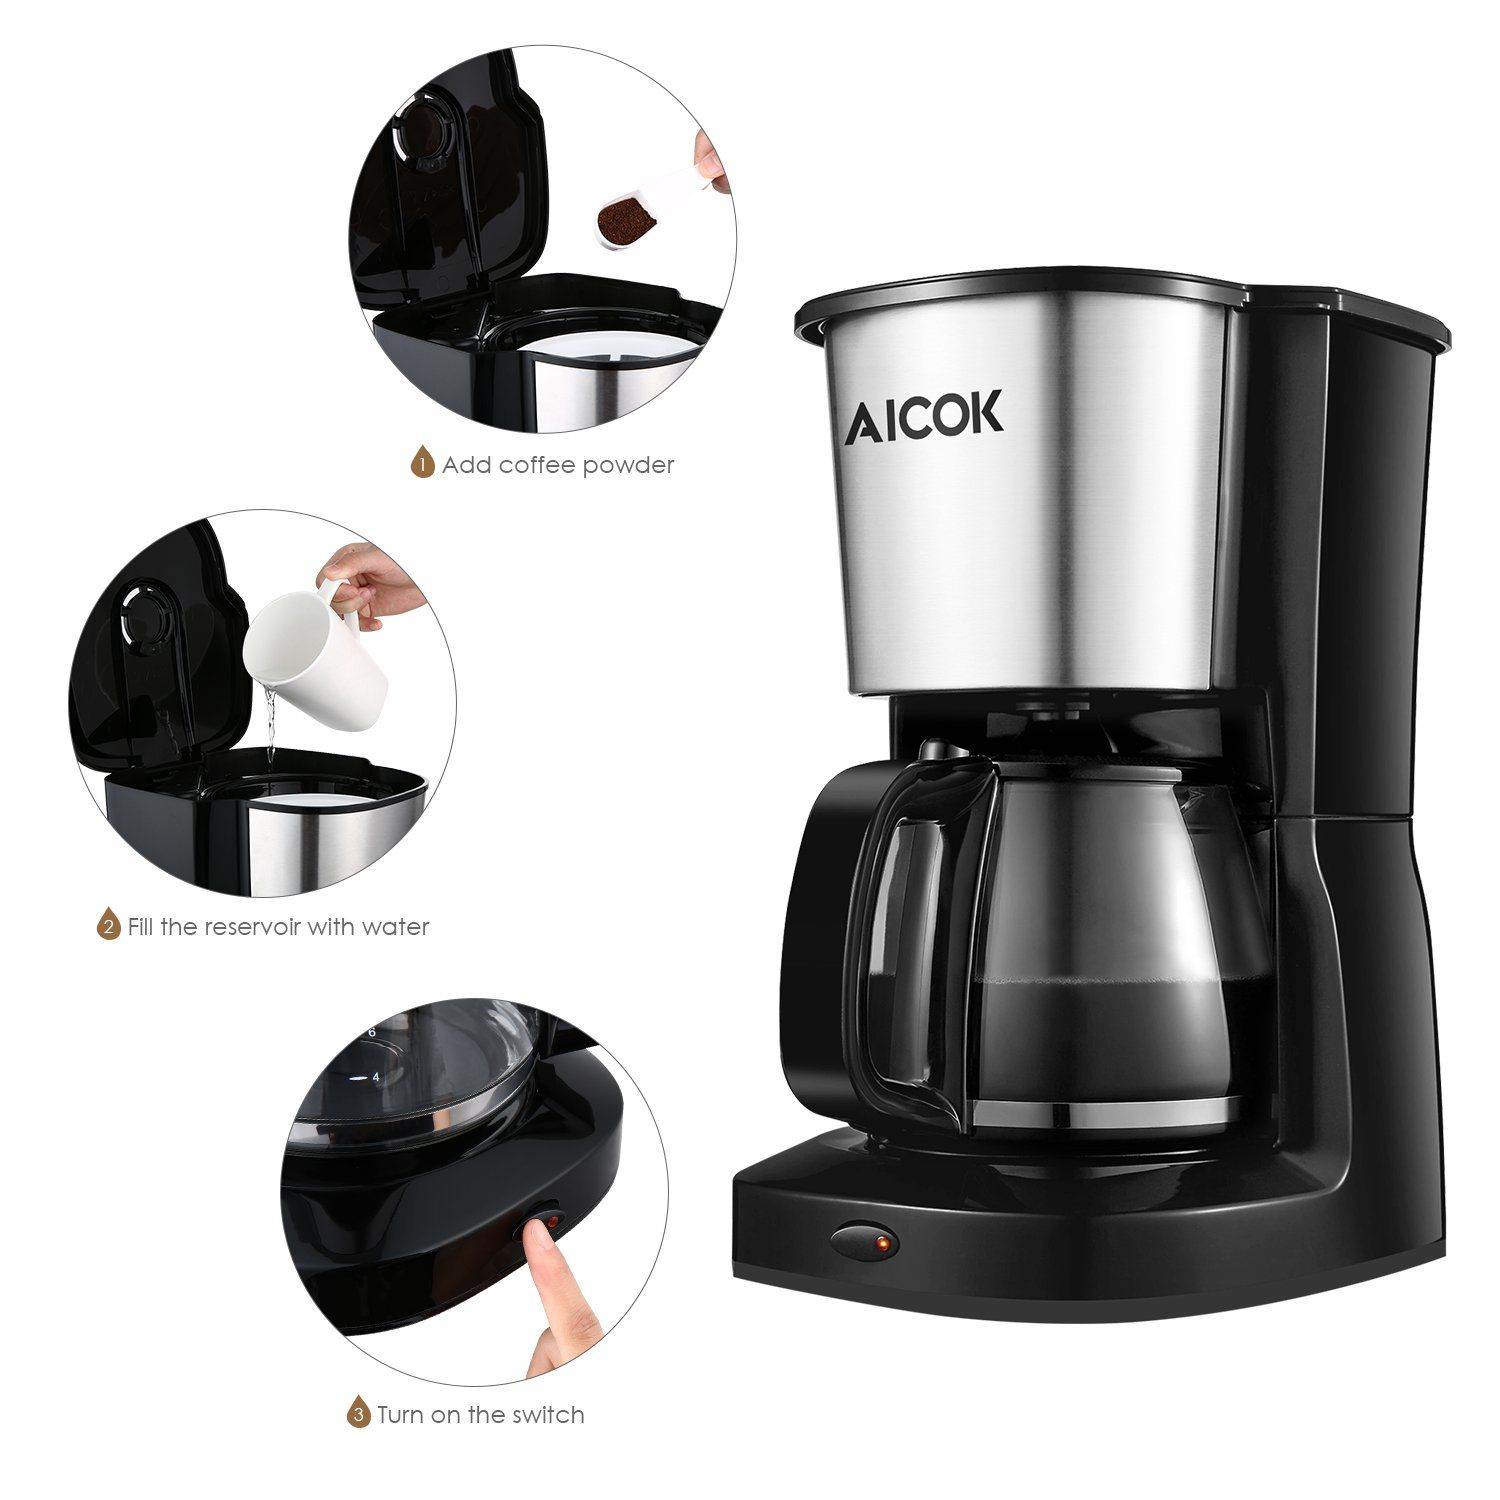 Aicok 10Cup Thermal Coffeemaker Drip Coffee Maker with